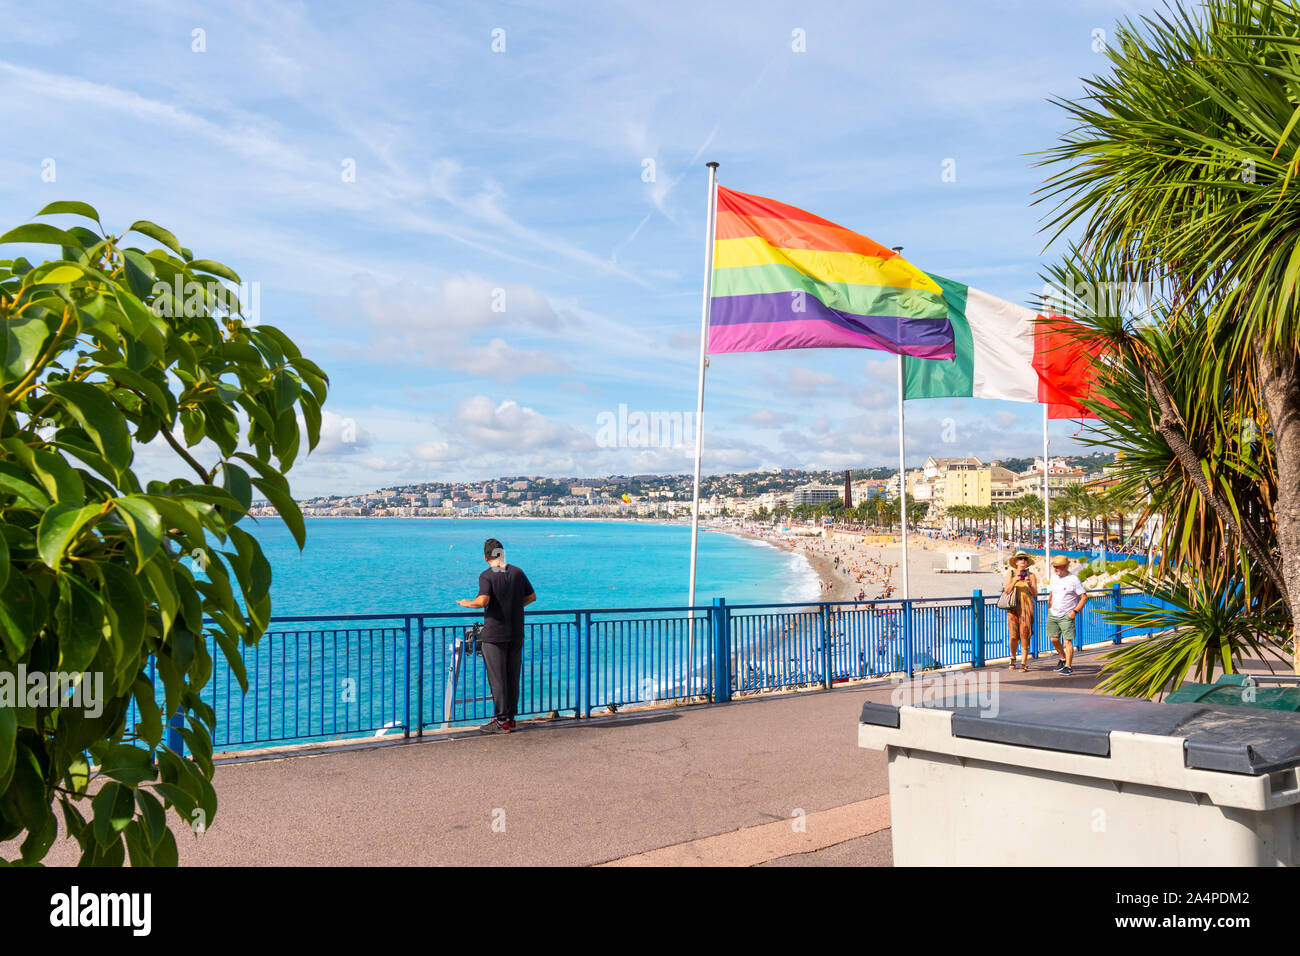 Tourists enjoy a beautiful day near the Rainbow flag on the French Riviera near Castle Hill overlooking Bay of Angels and the beach in Nice Stock Photo